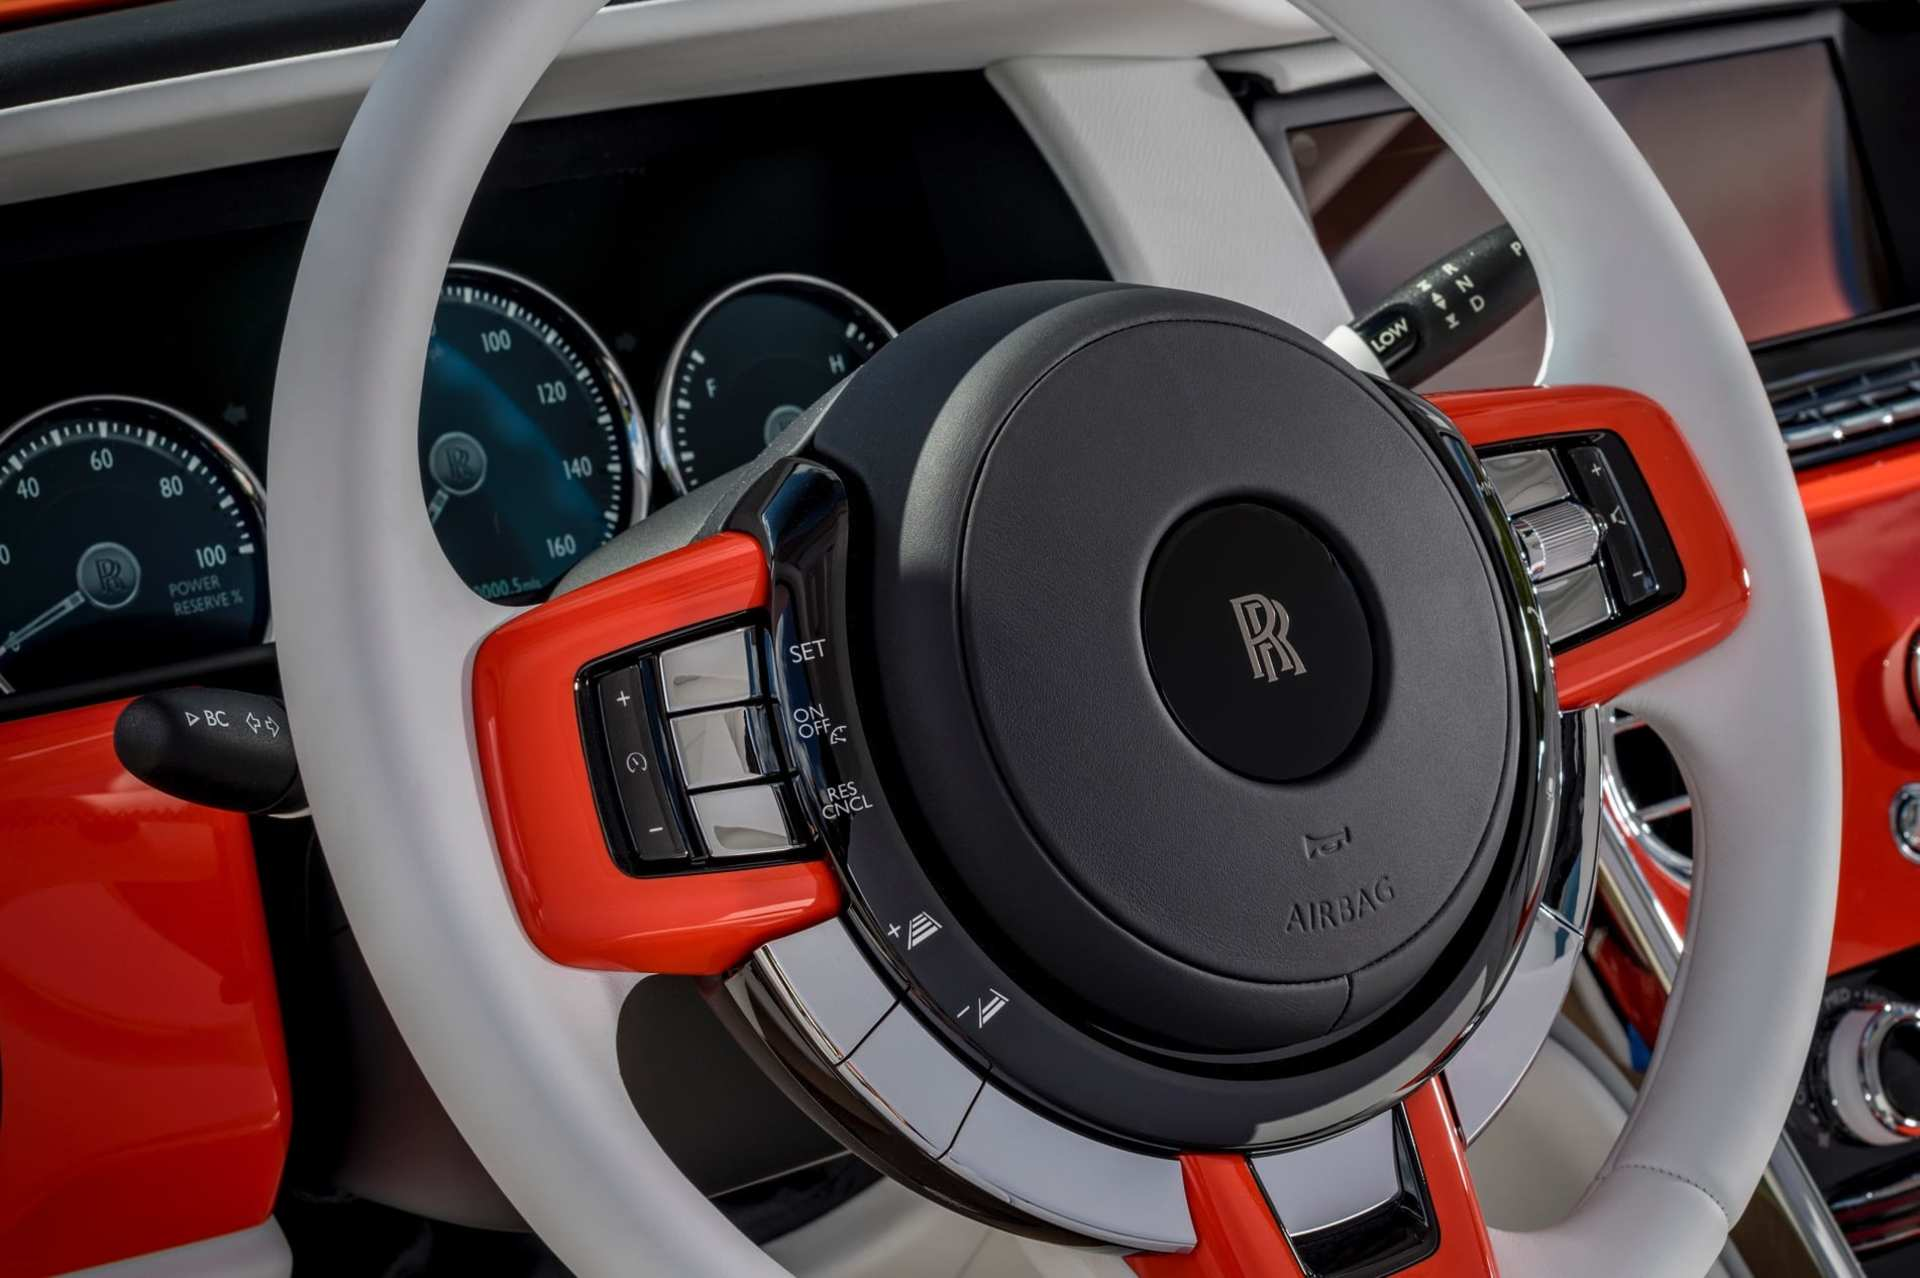 The steering wheel of the Bespoke Fux Orange Cullinan Rolls-Royce motor car